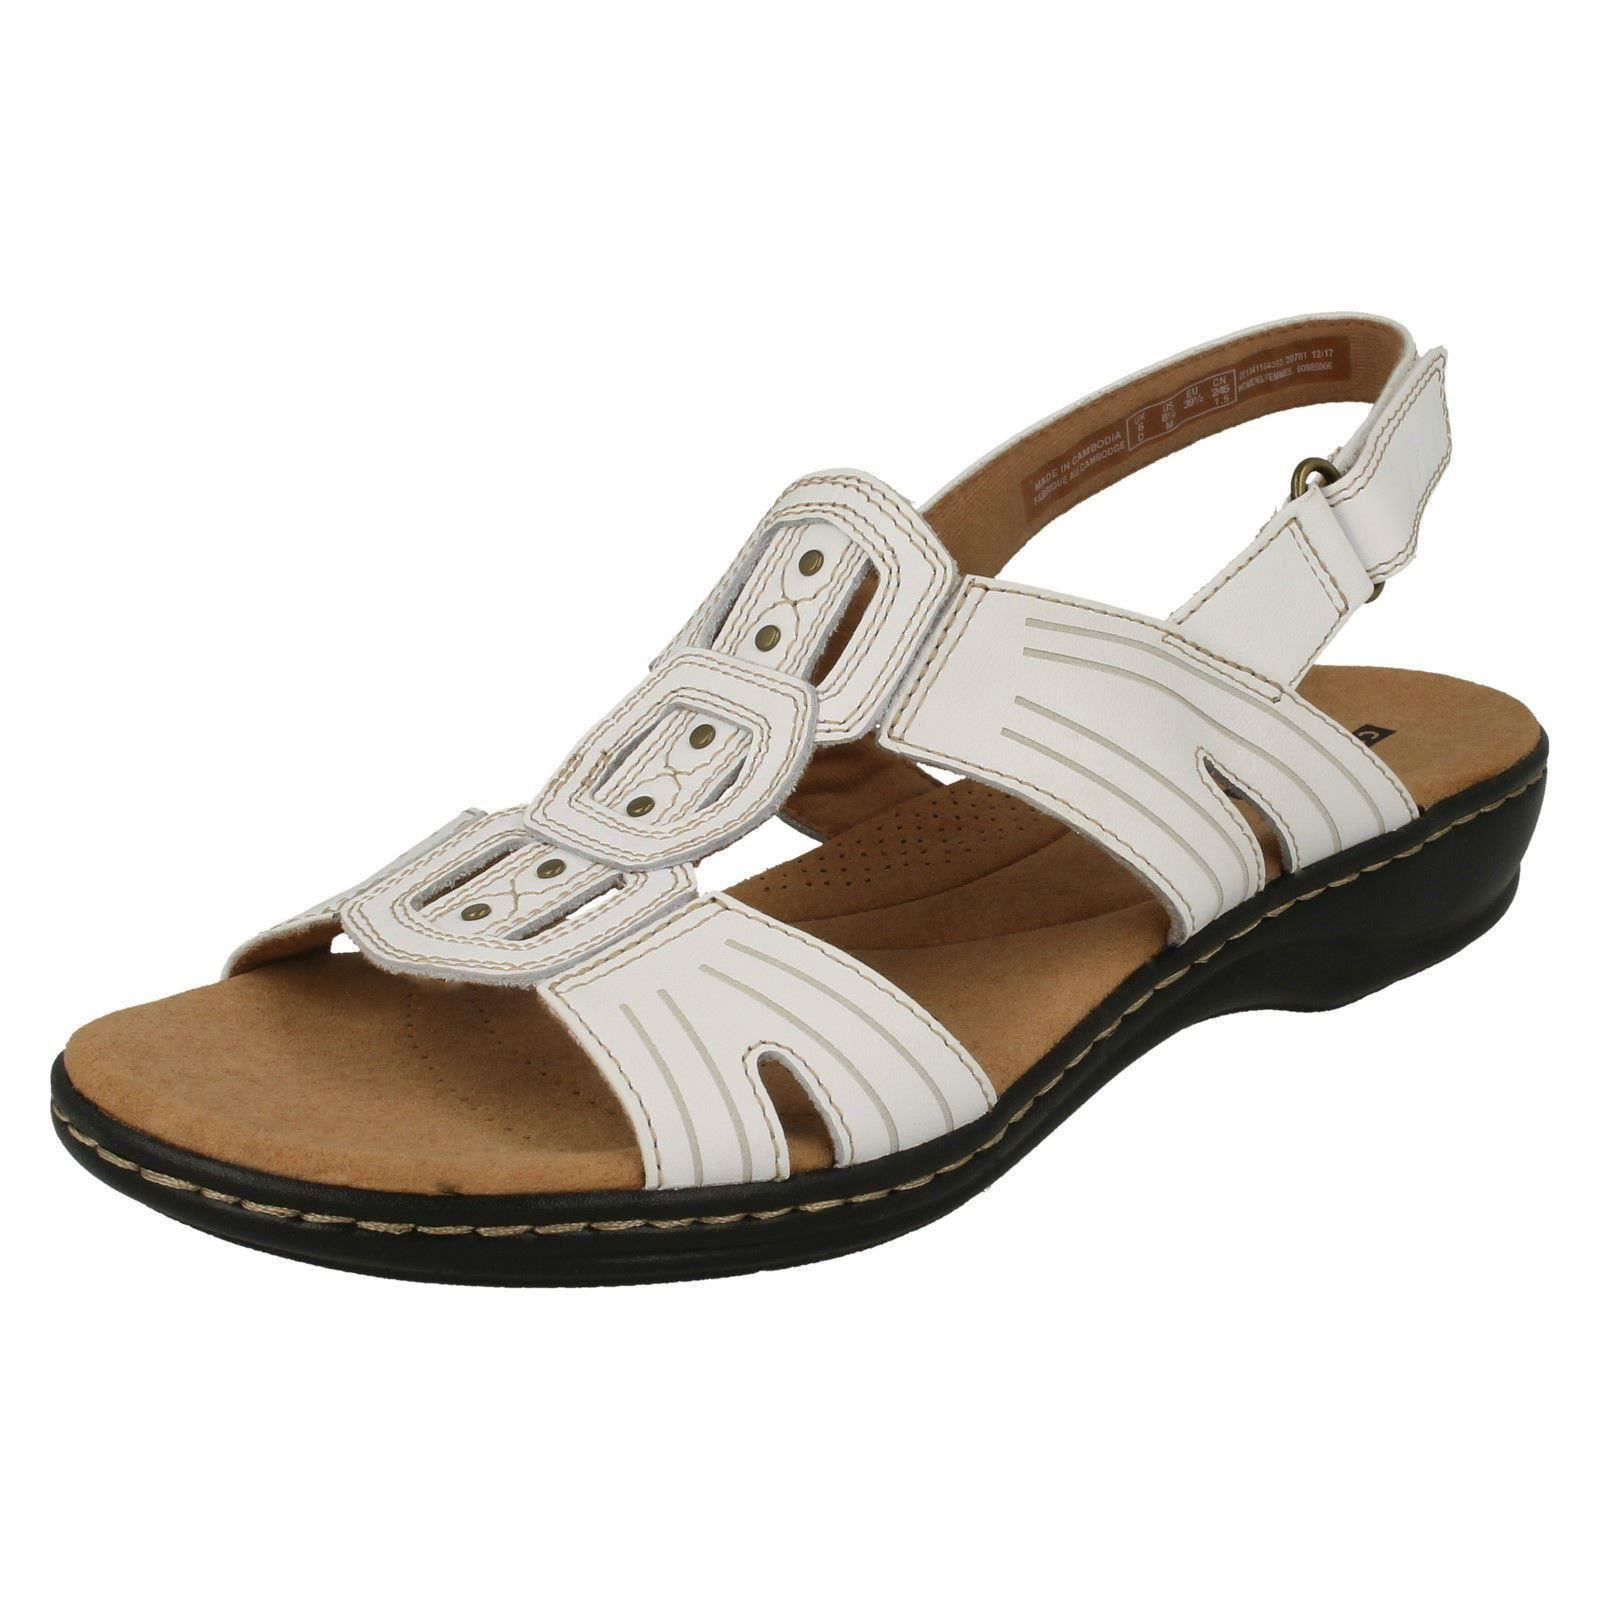 70af999c855 Ladies Clarks Leisa Vine Casual Leather Sandals - D Fitting UK 4.5 ...